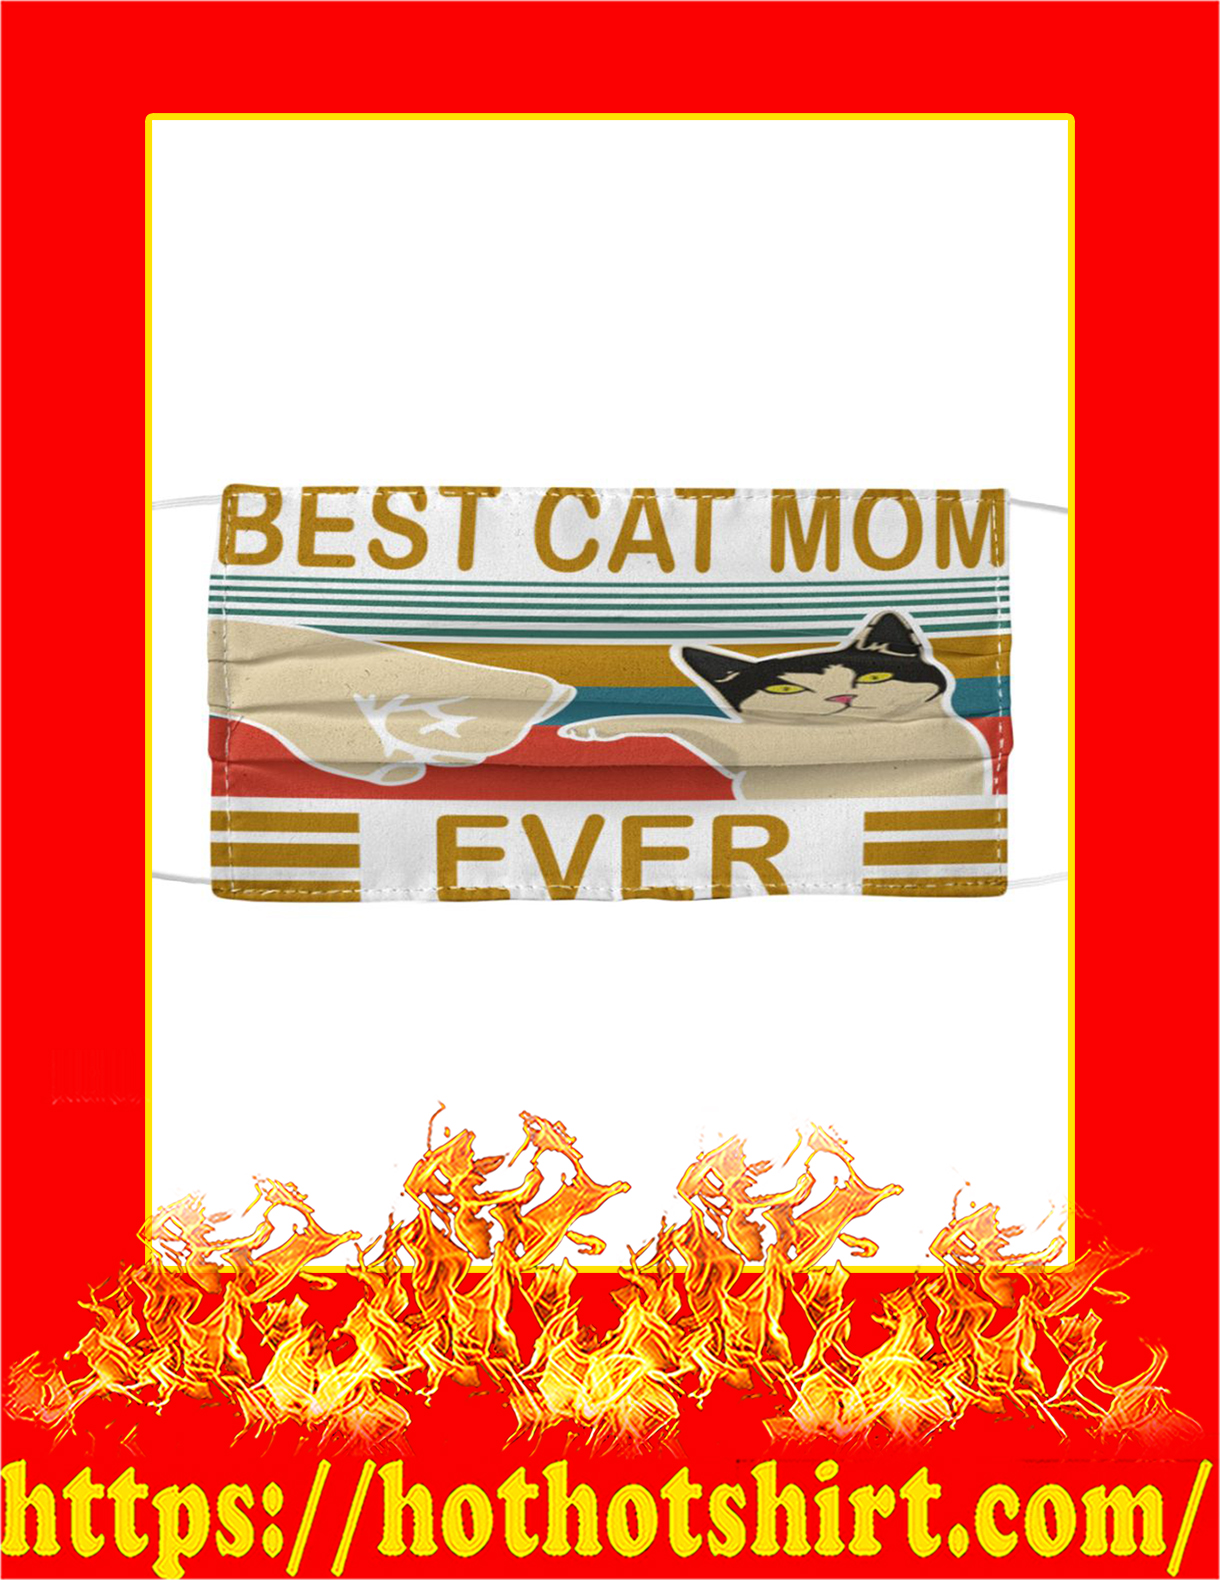 Best cat mom ever cloth face mask - detail